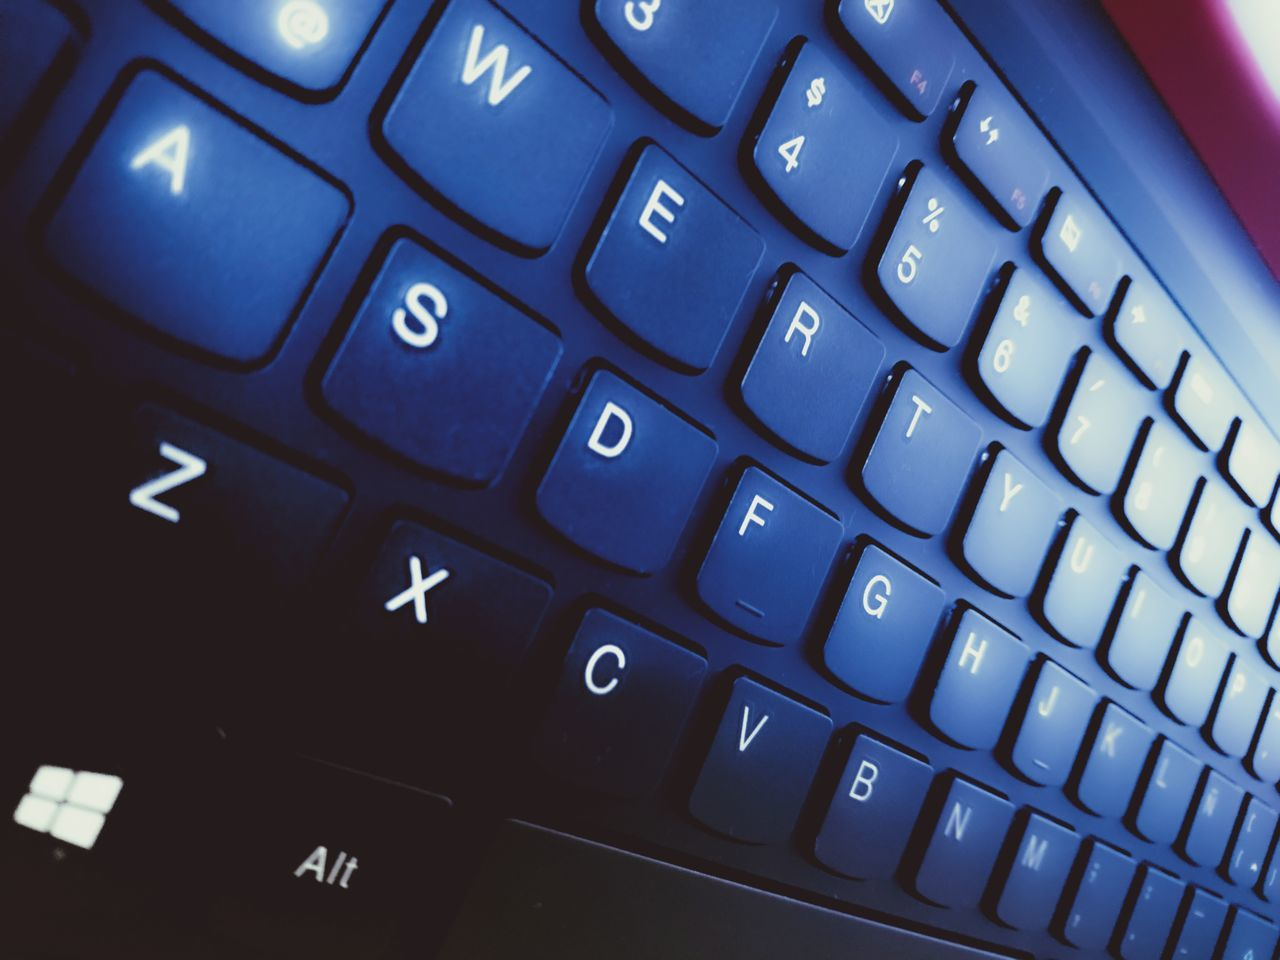 technology, computer key, computer keyboard, connection, text, alphabet, communication, keyboard, computer, indoors, high angle view, close-up, no people, computer equipment, convenience, typewriter, day